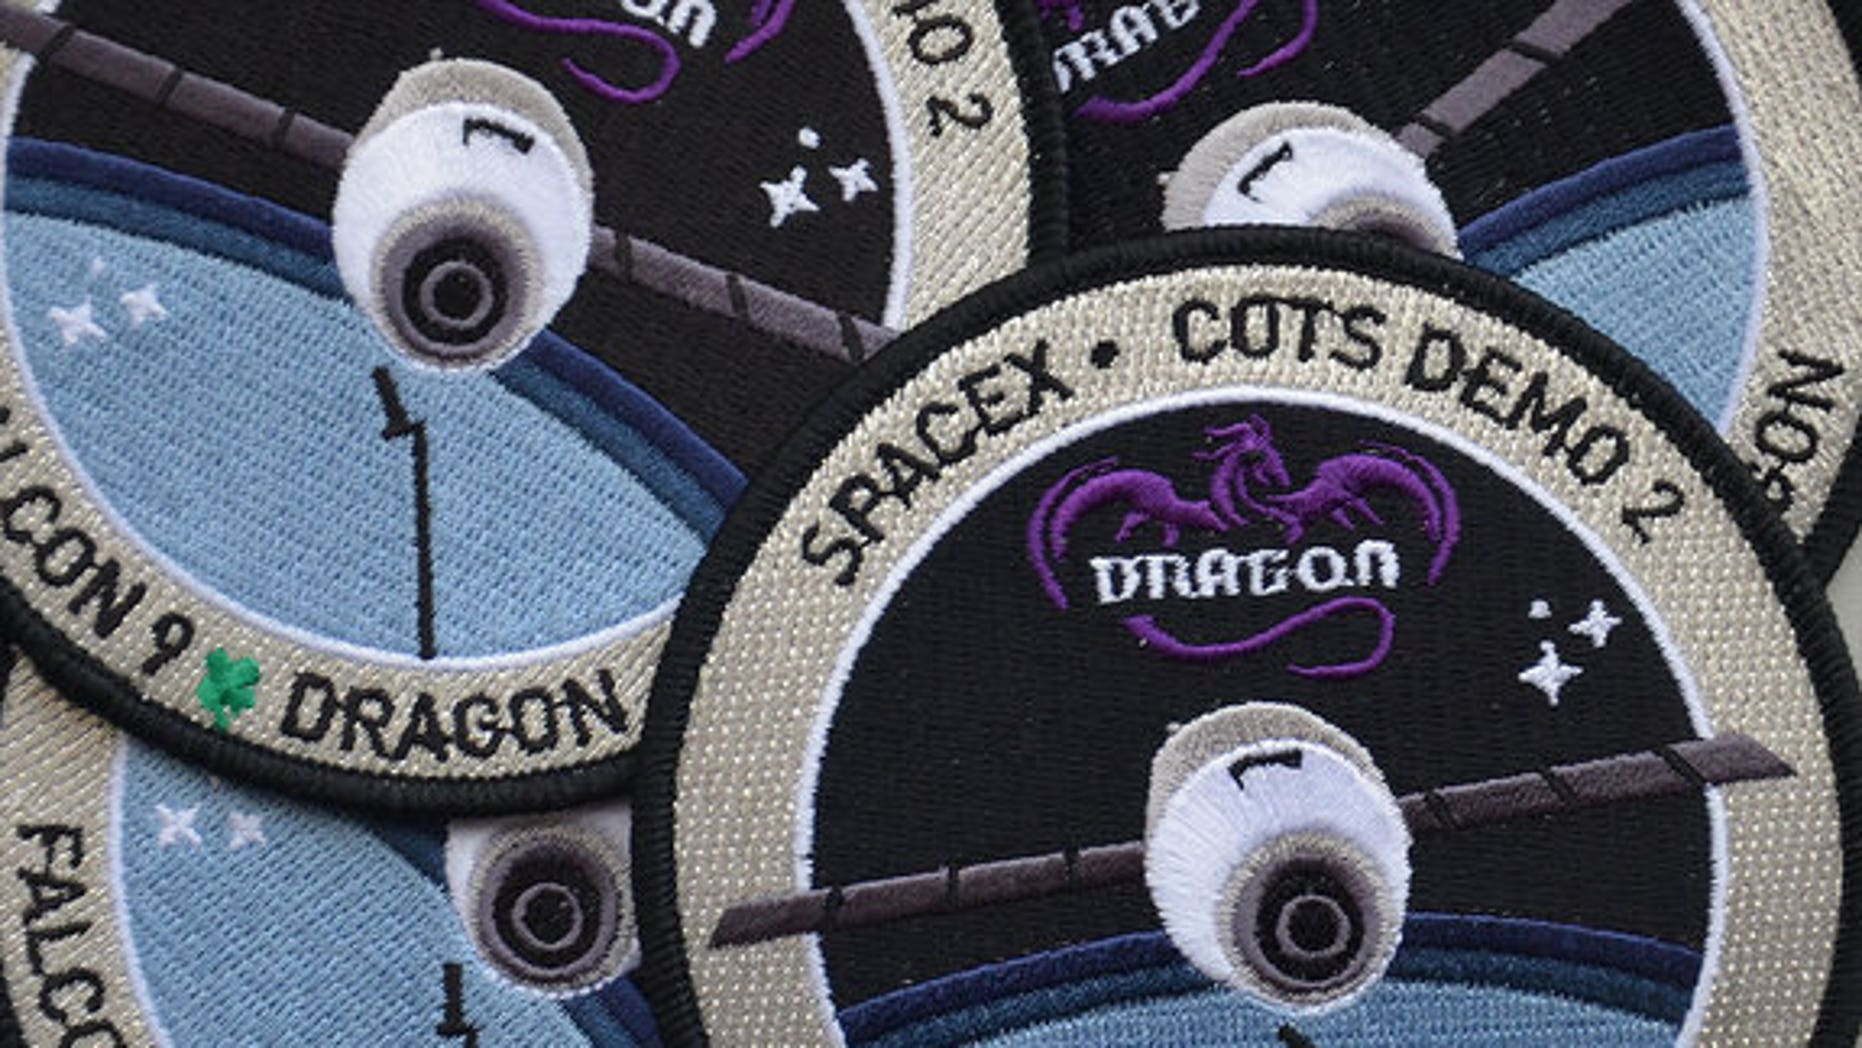 SpaceX is offering just 200 sets of its limited edition space mission patches through its online apparel and accessories store at shop.spacex.com.